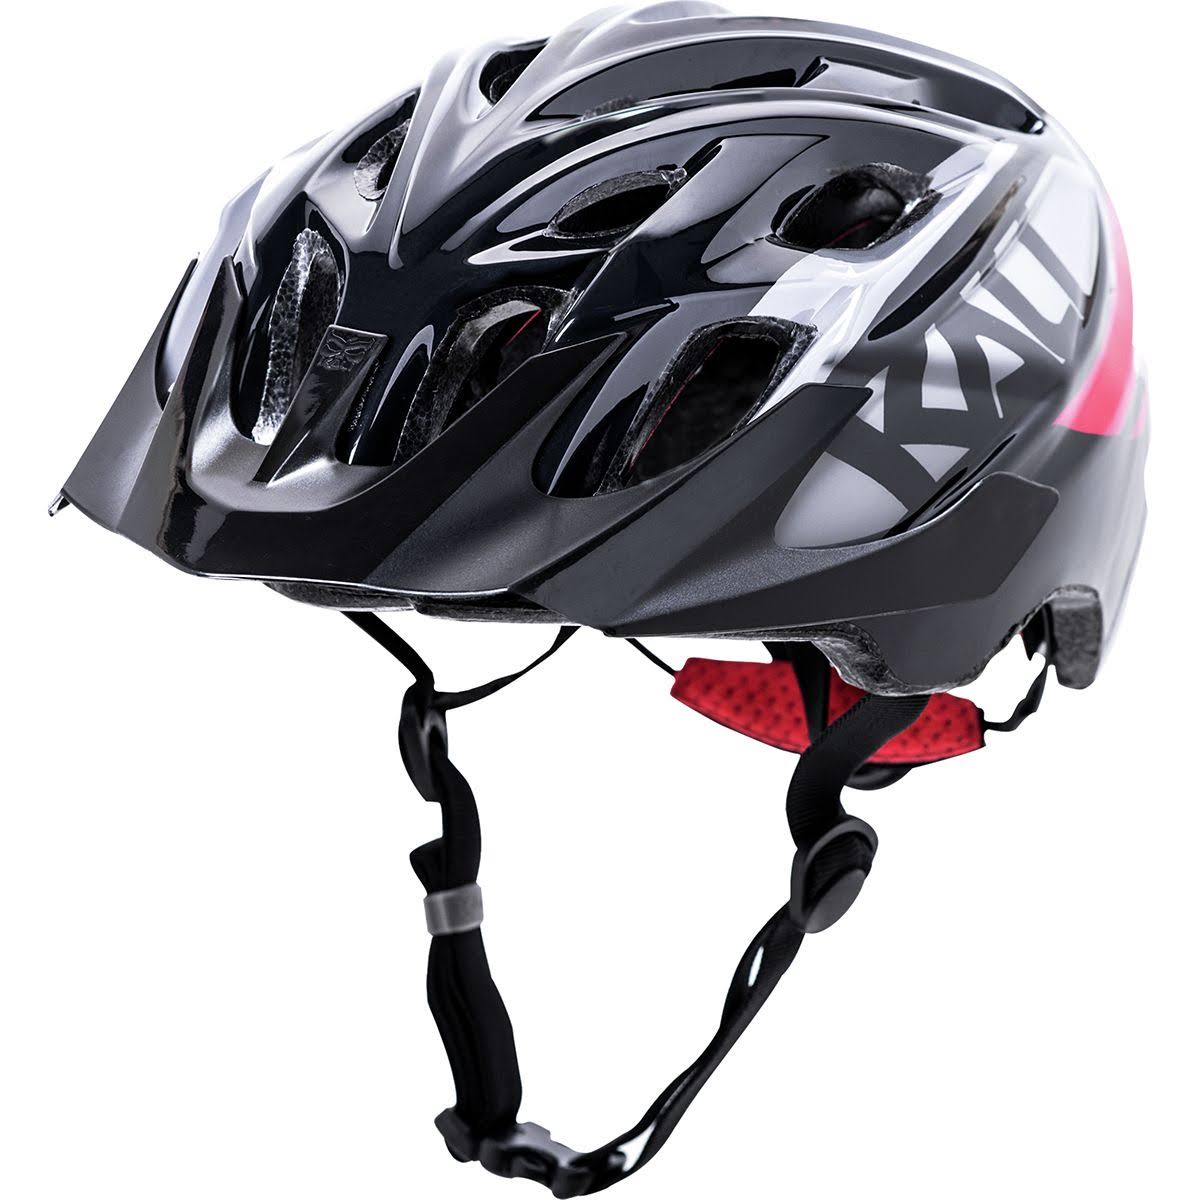 Kali Protectives Youth Chakra Snap Helmet - Gloss Black and Red